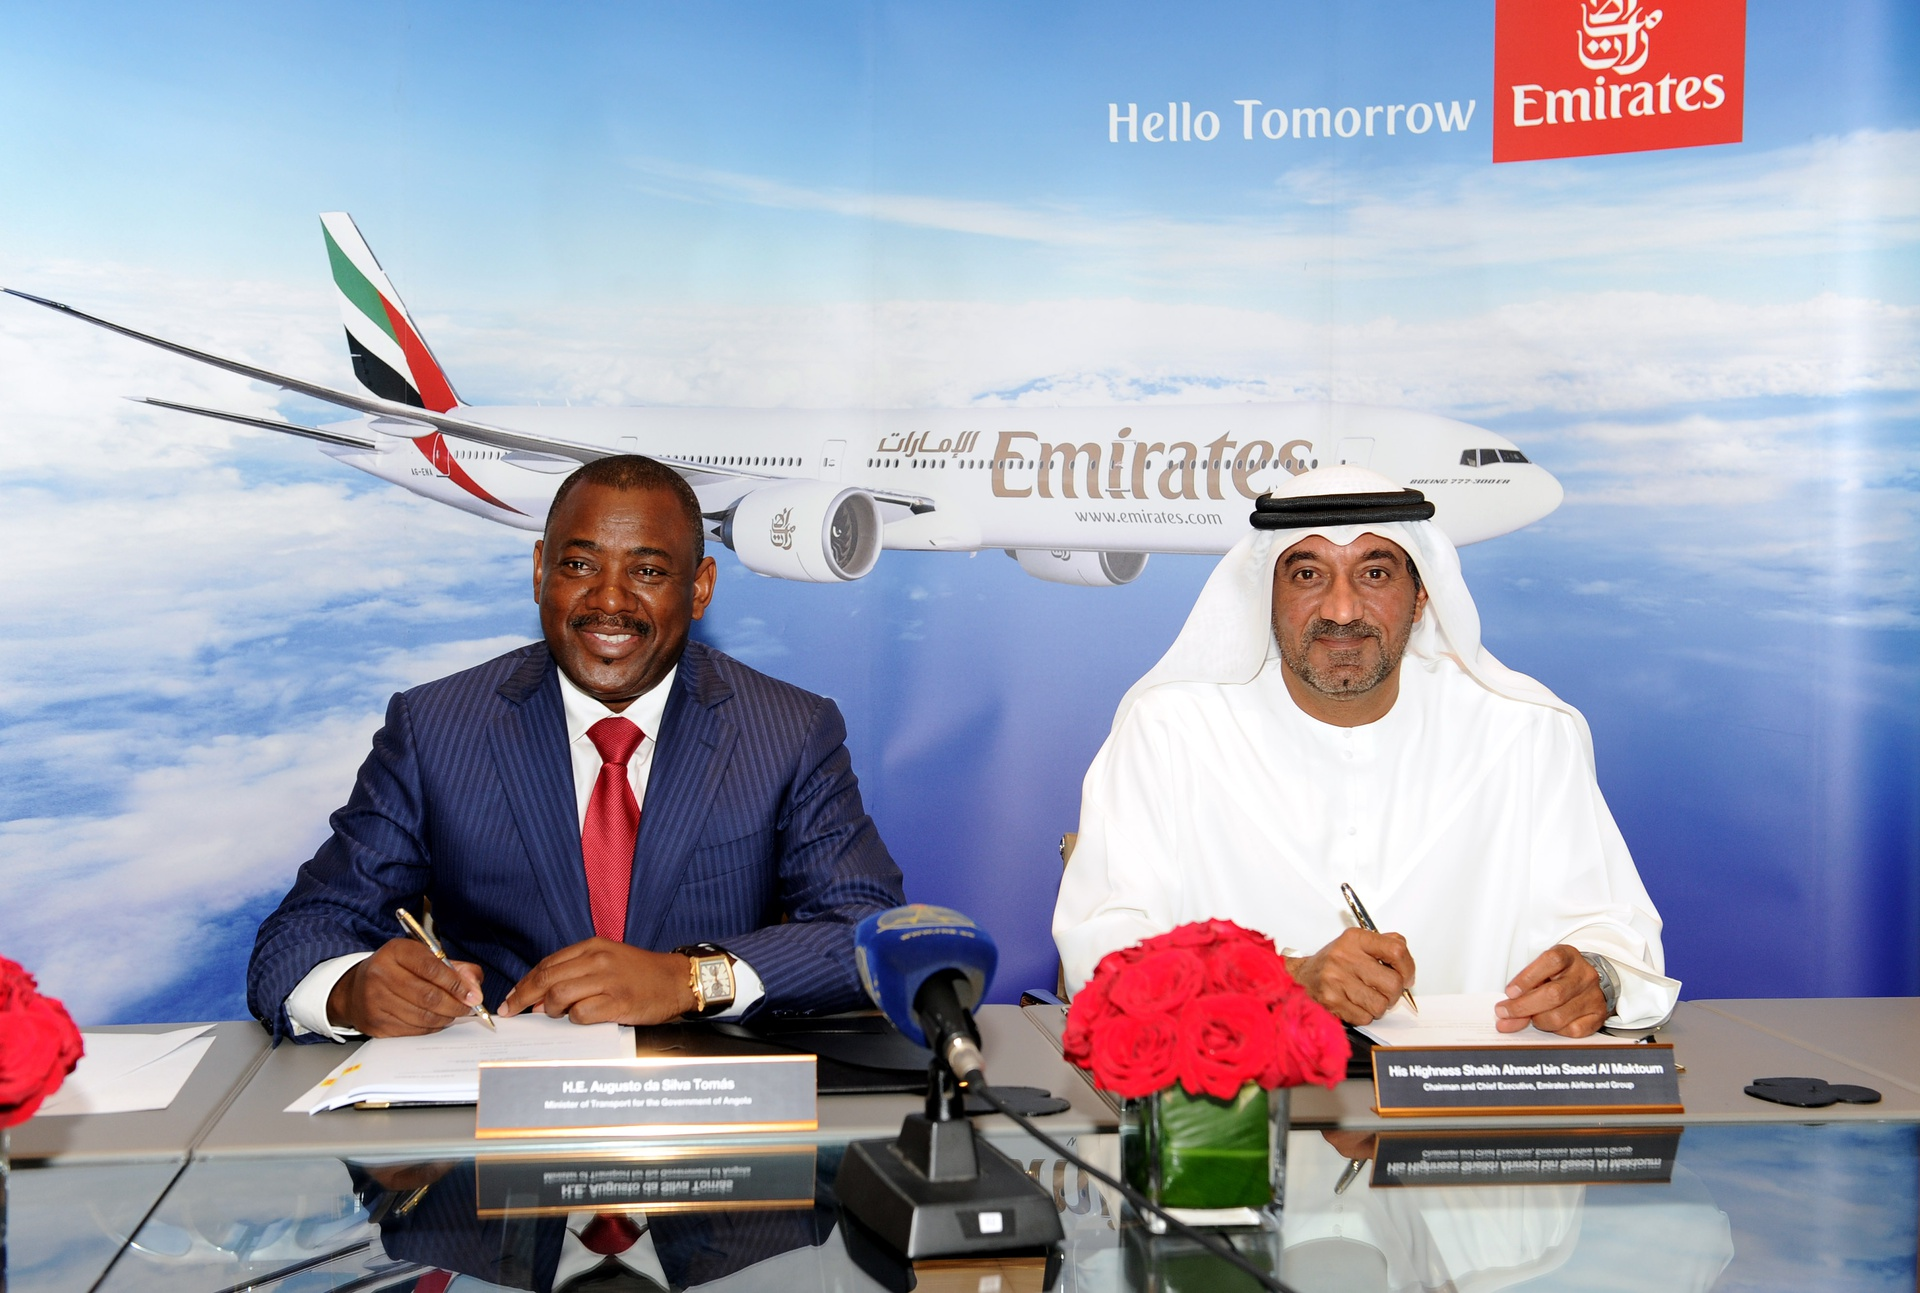 H.E. Augusto da Silva Tomás, the Minister of Transport for Government of Angola and His Highness Sheikh Ahmed bin Saeed Al Maktoum, Chairman and Chief Executive, Emirates Airline and Group sign the Management Concession Agreement.